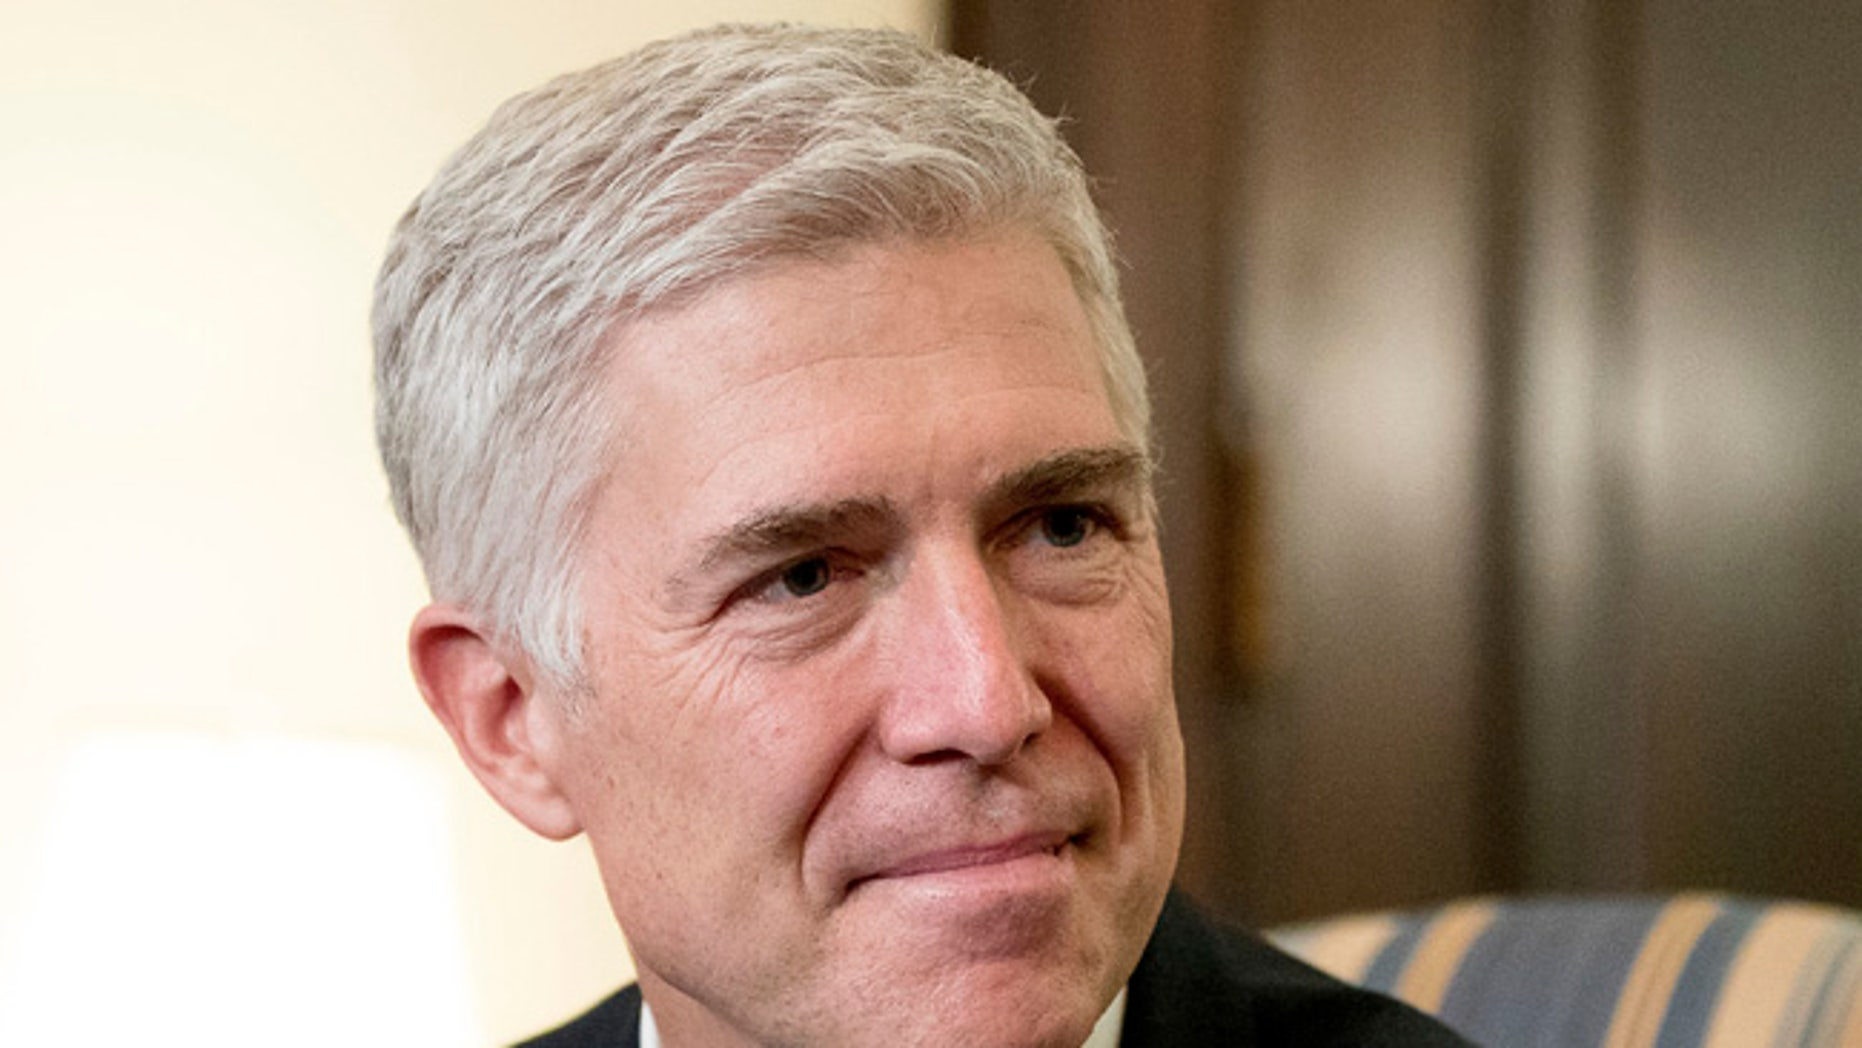 Supreme Court Justice nominee Neil Gorsuch meets with Sen. Chris Coons in Washington.